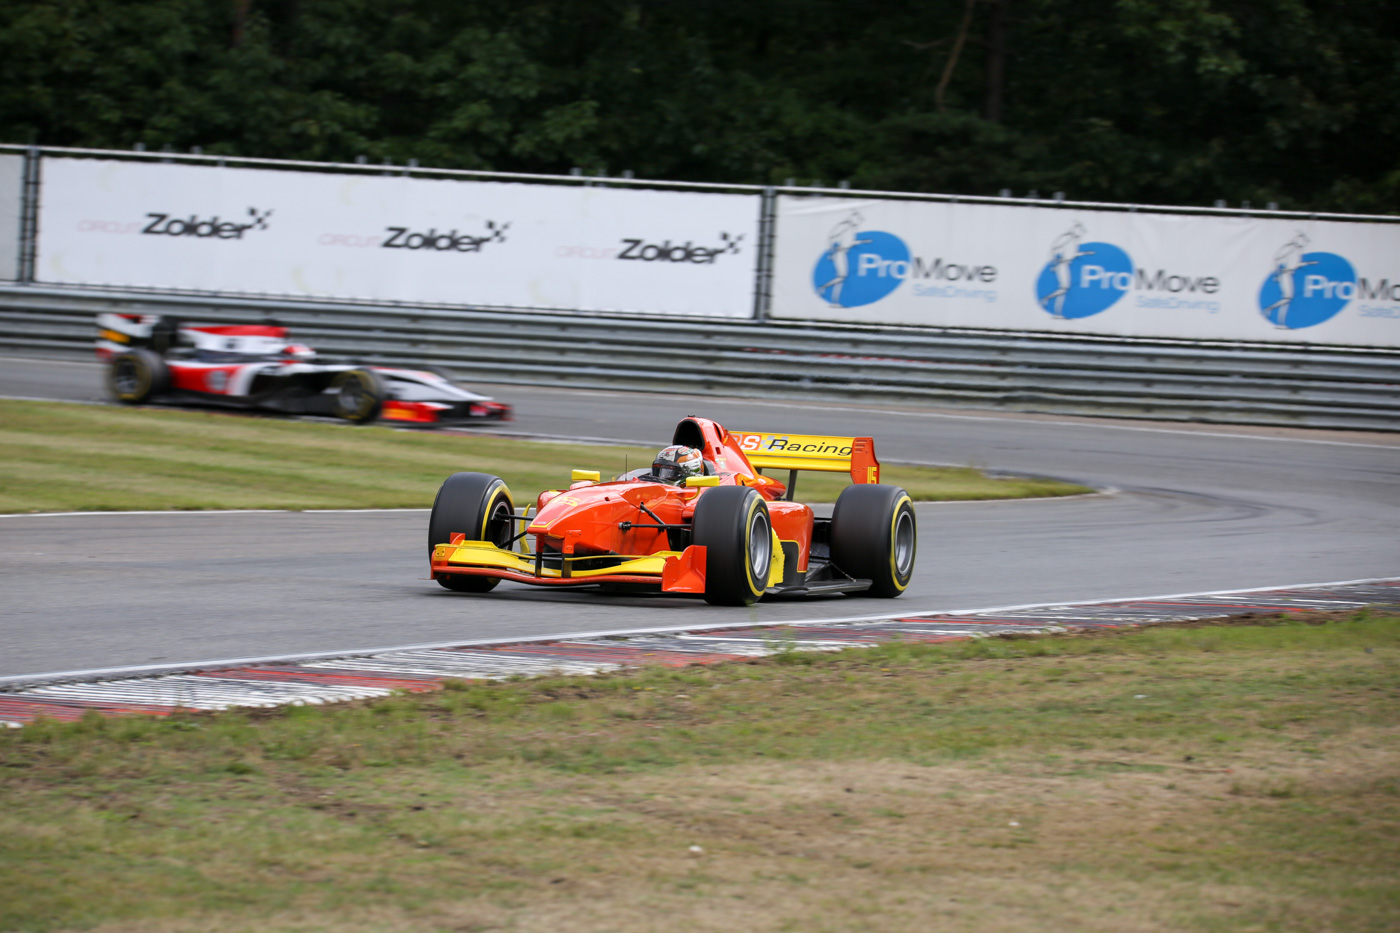 Mahaveer Raghunathan (r.) finishing Qualifying as fastest driver of the FORMULA class at Zolder 2017.